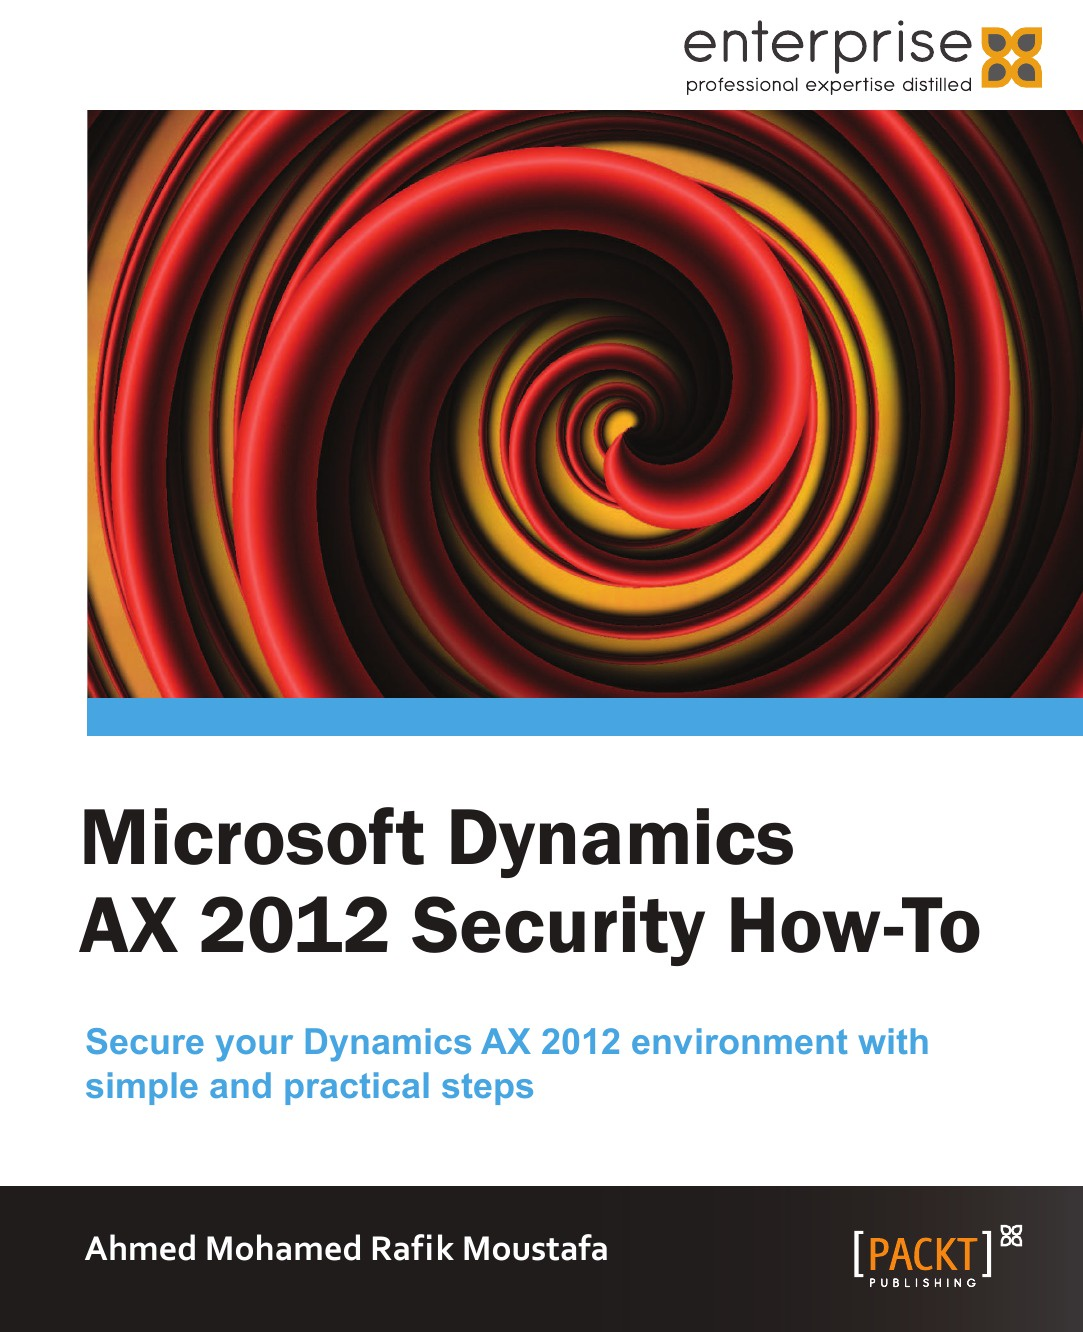 Ahmed Mohamed Rafik Microsoft Dynamics Ax 2012 Security - How to